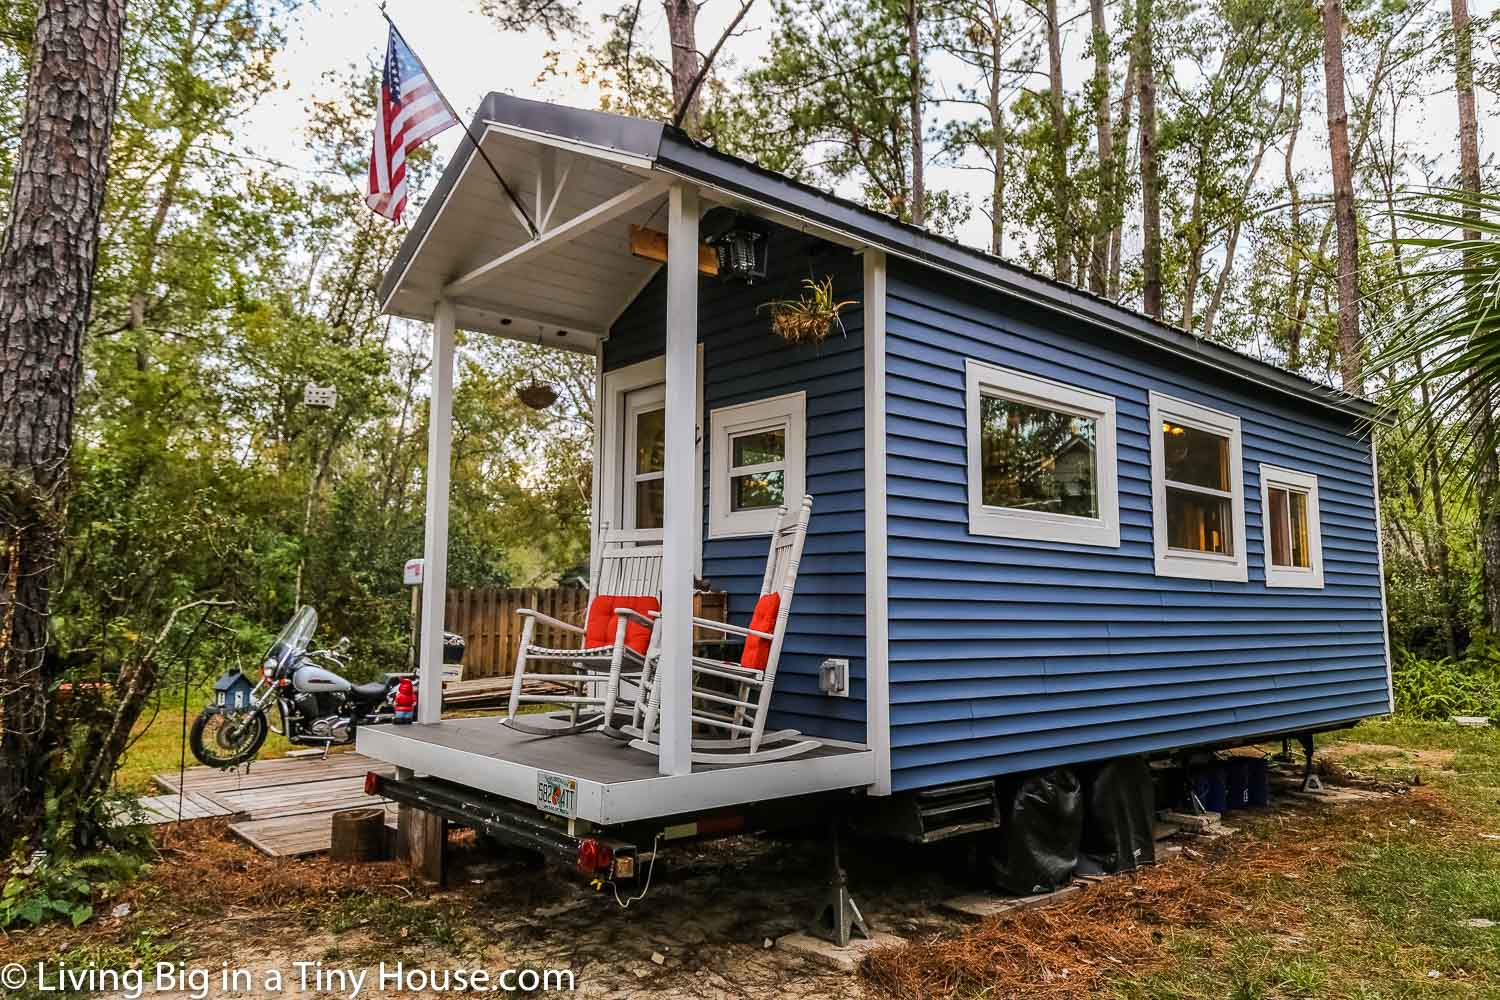 Garage Living Big Jacksonville Florida Now Lives Tiny Homes A Tiny House College Student Builds His Own Tiny Home Florida To Buy Tiny Houses A Tiny House Living Big curbed Tiny Houses In Florida